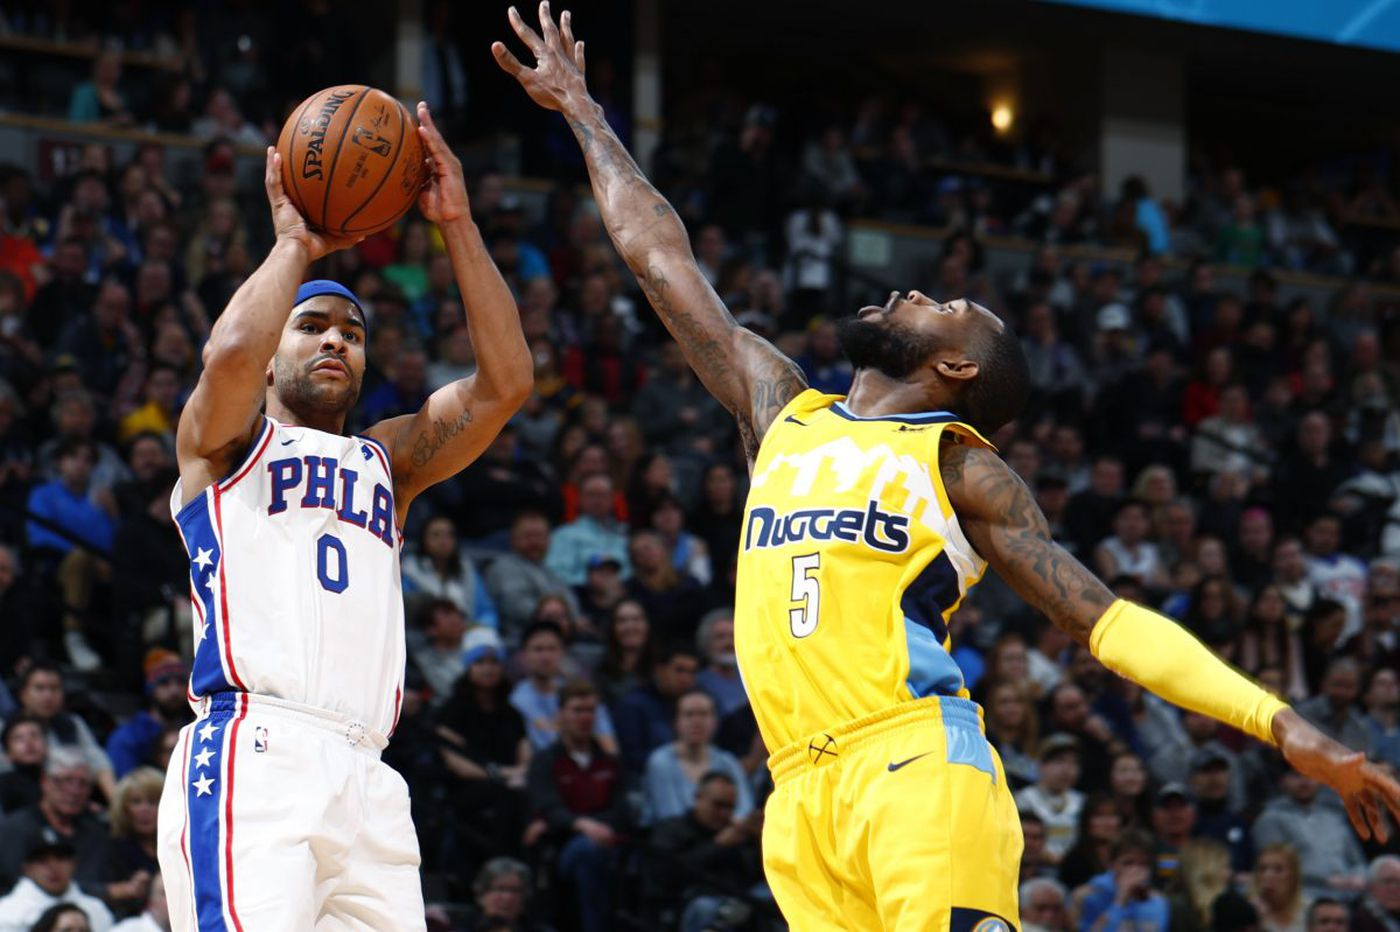 Sixers-Nuggets observations, 'best' and 'worst' awards: Jerryd Bayless, Mason Plumlee and Denver's shooting woes